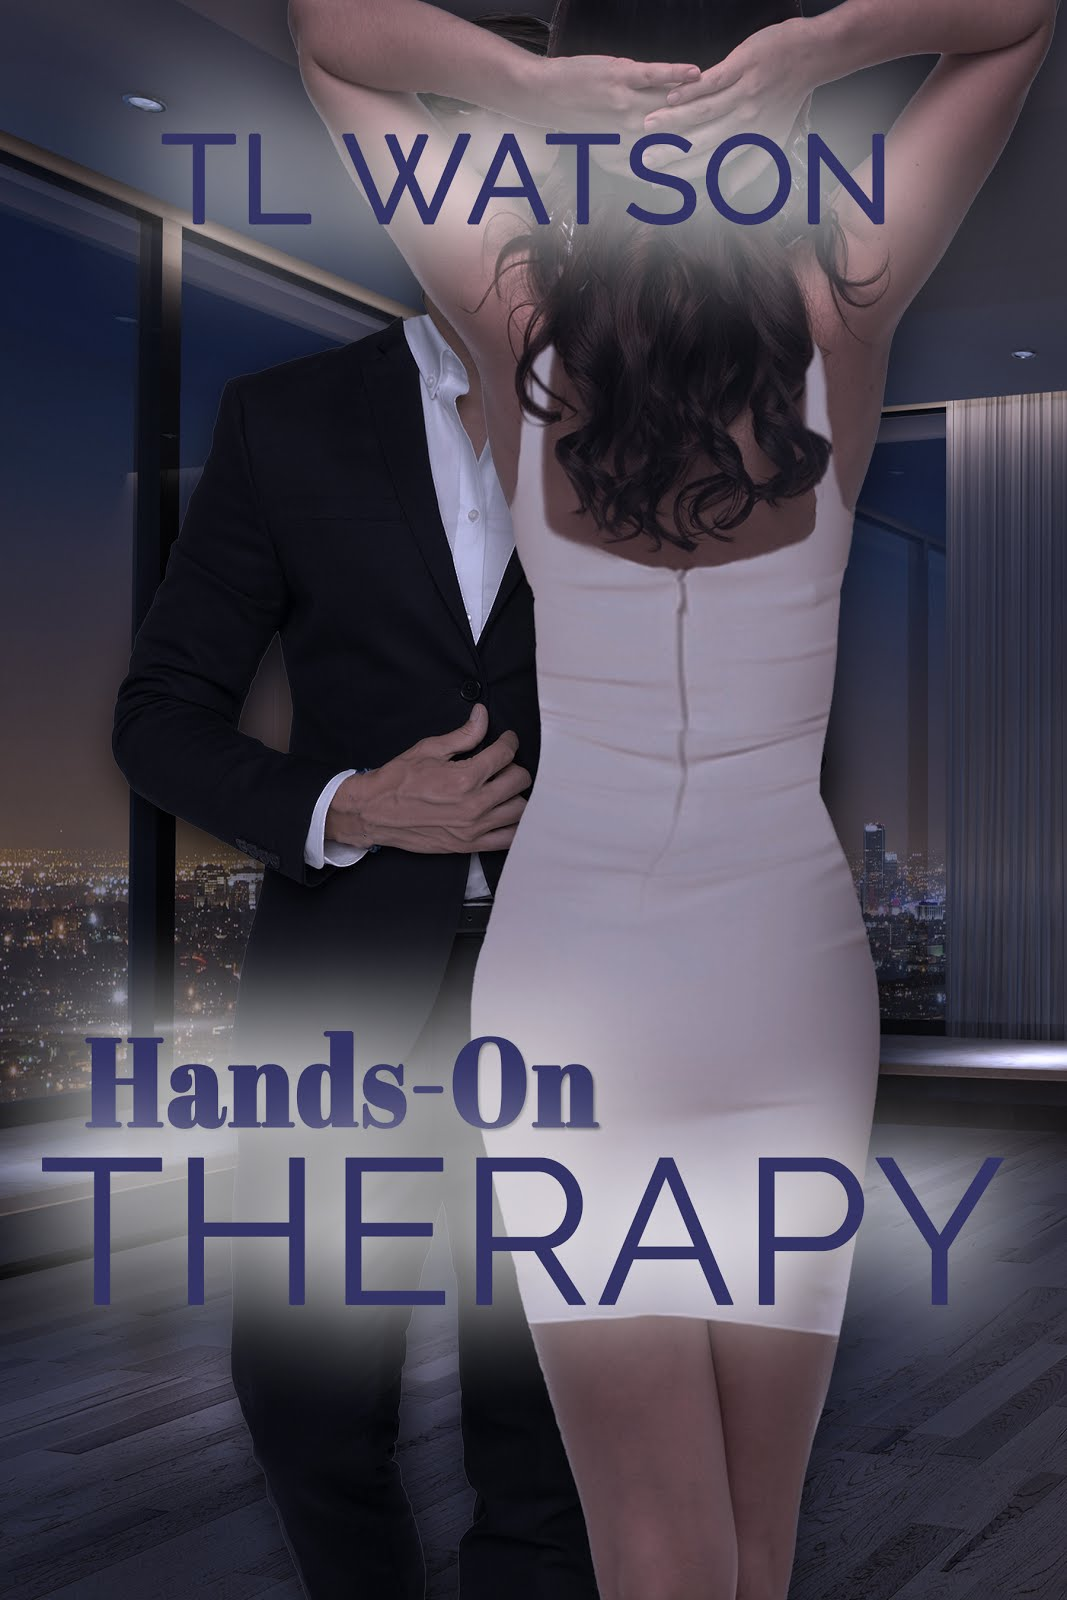 Hands-on Therapy